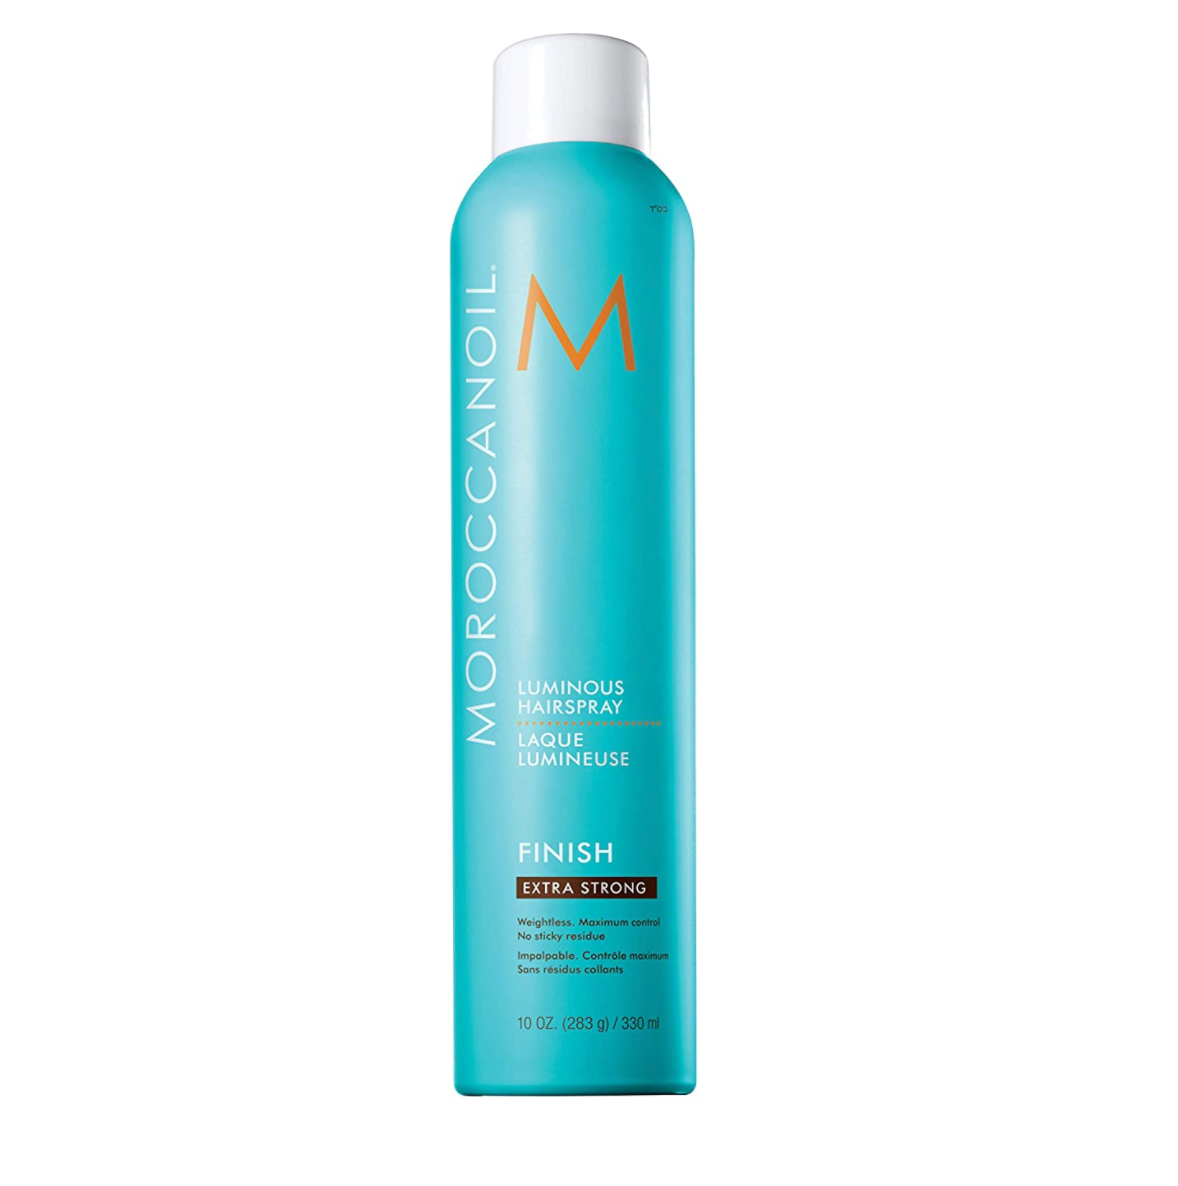 Luminous Hairspray - Extra Strong Hold